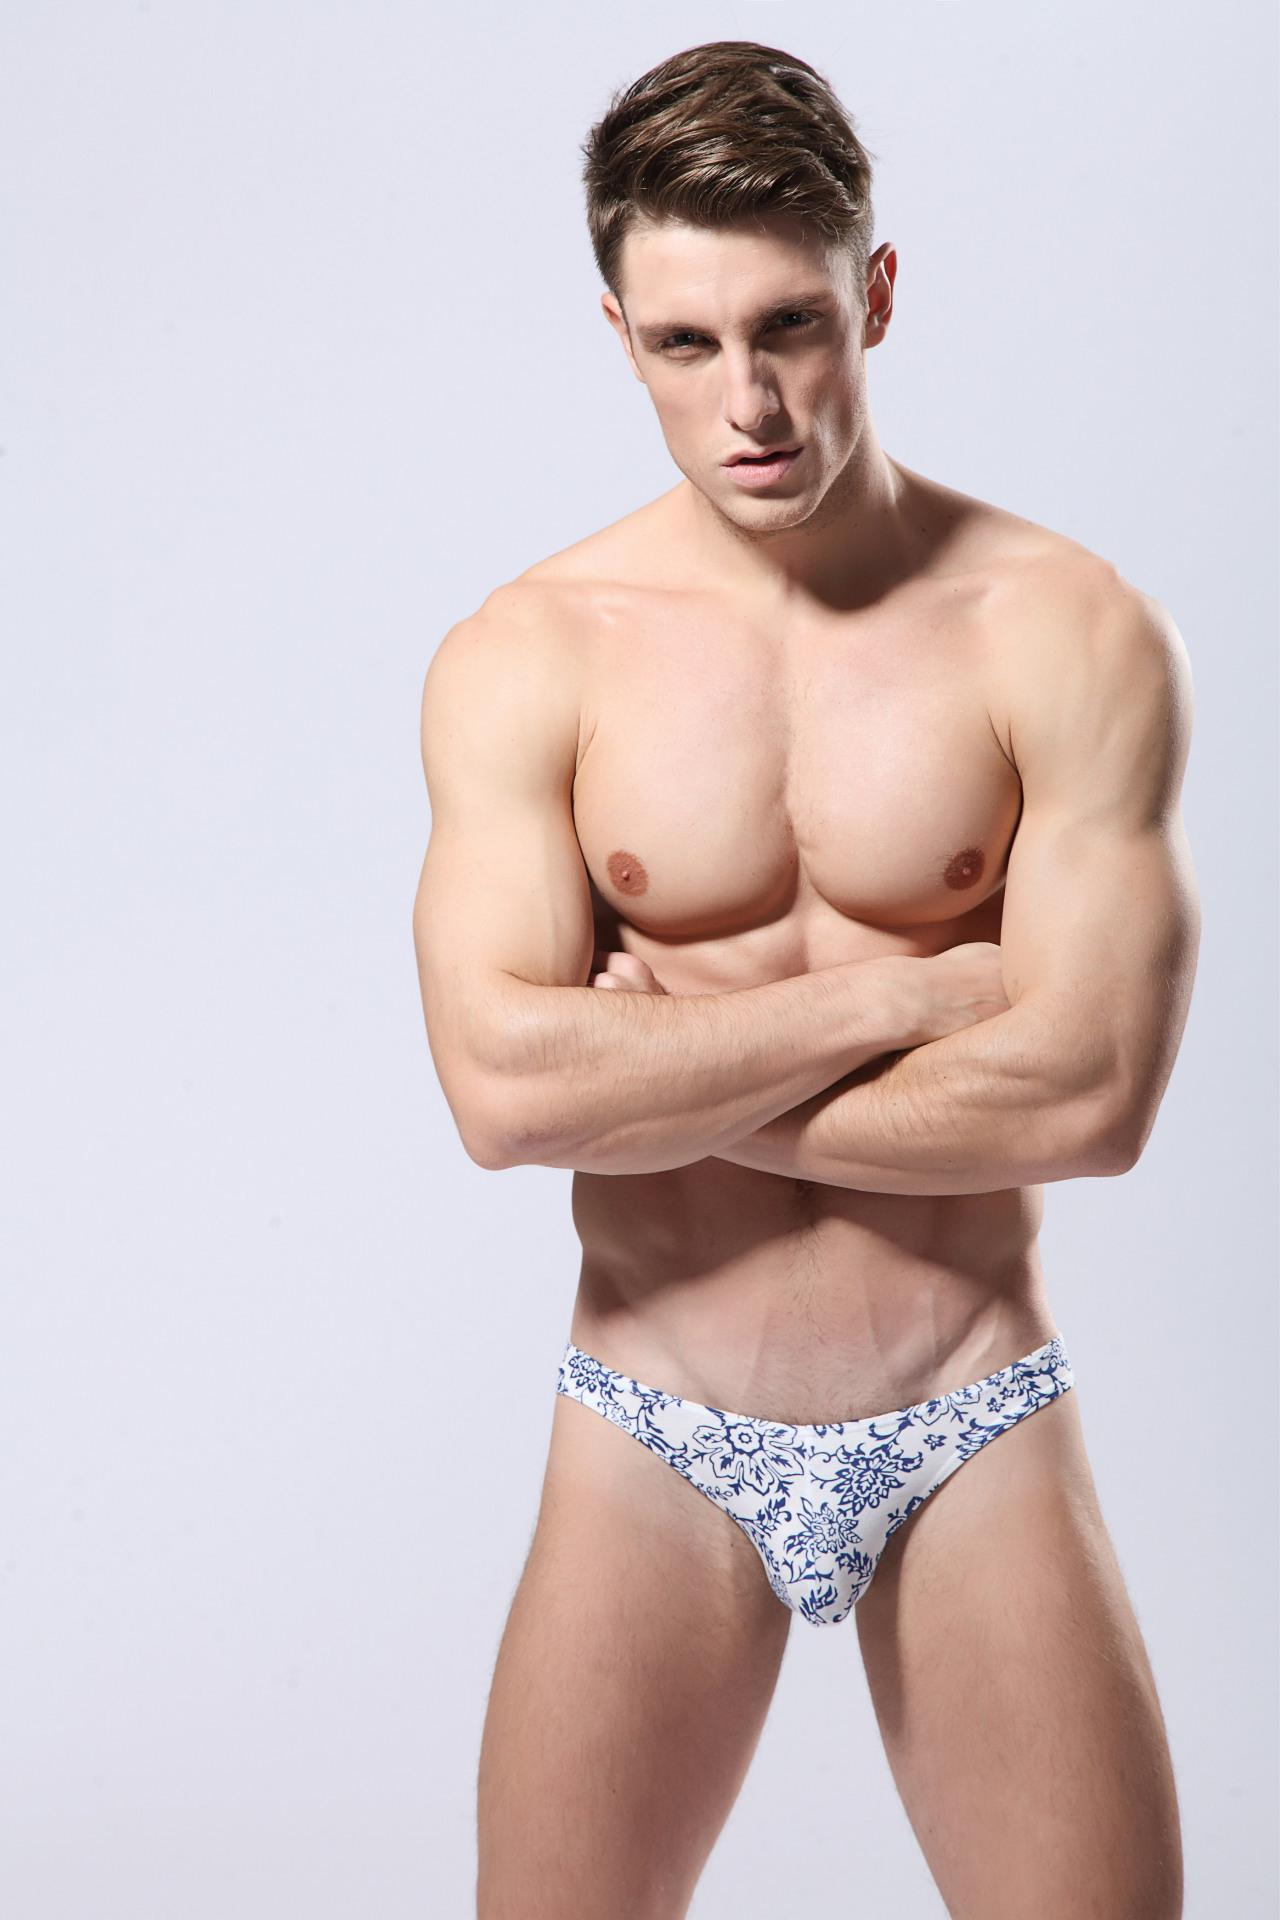 Men's Underwear, Boxers, Briefs & Undershirts. Every ensemble begins with a great pair of underwear. From undershirts and boxers to briefs and athletic boxer briefs, you'll find just what you're looking for to get through your workday or sport of choice comfortably. With a variety of fits, styles and brands to choose from, your underwear drawer will never be bare!